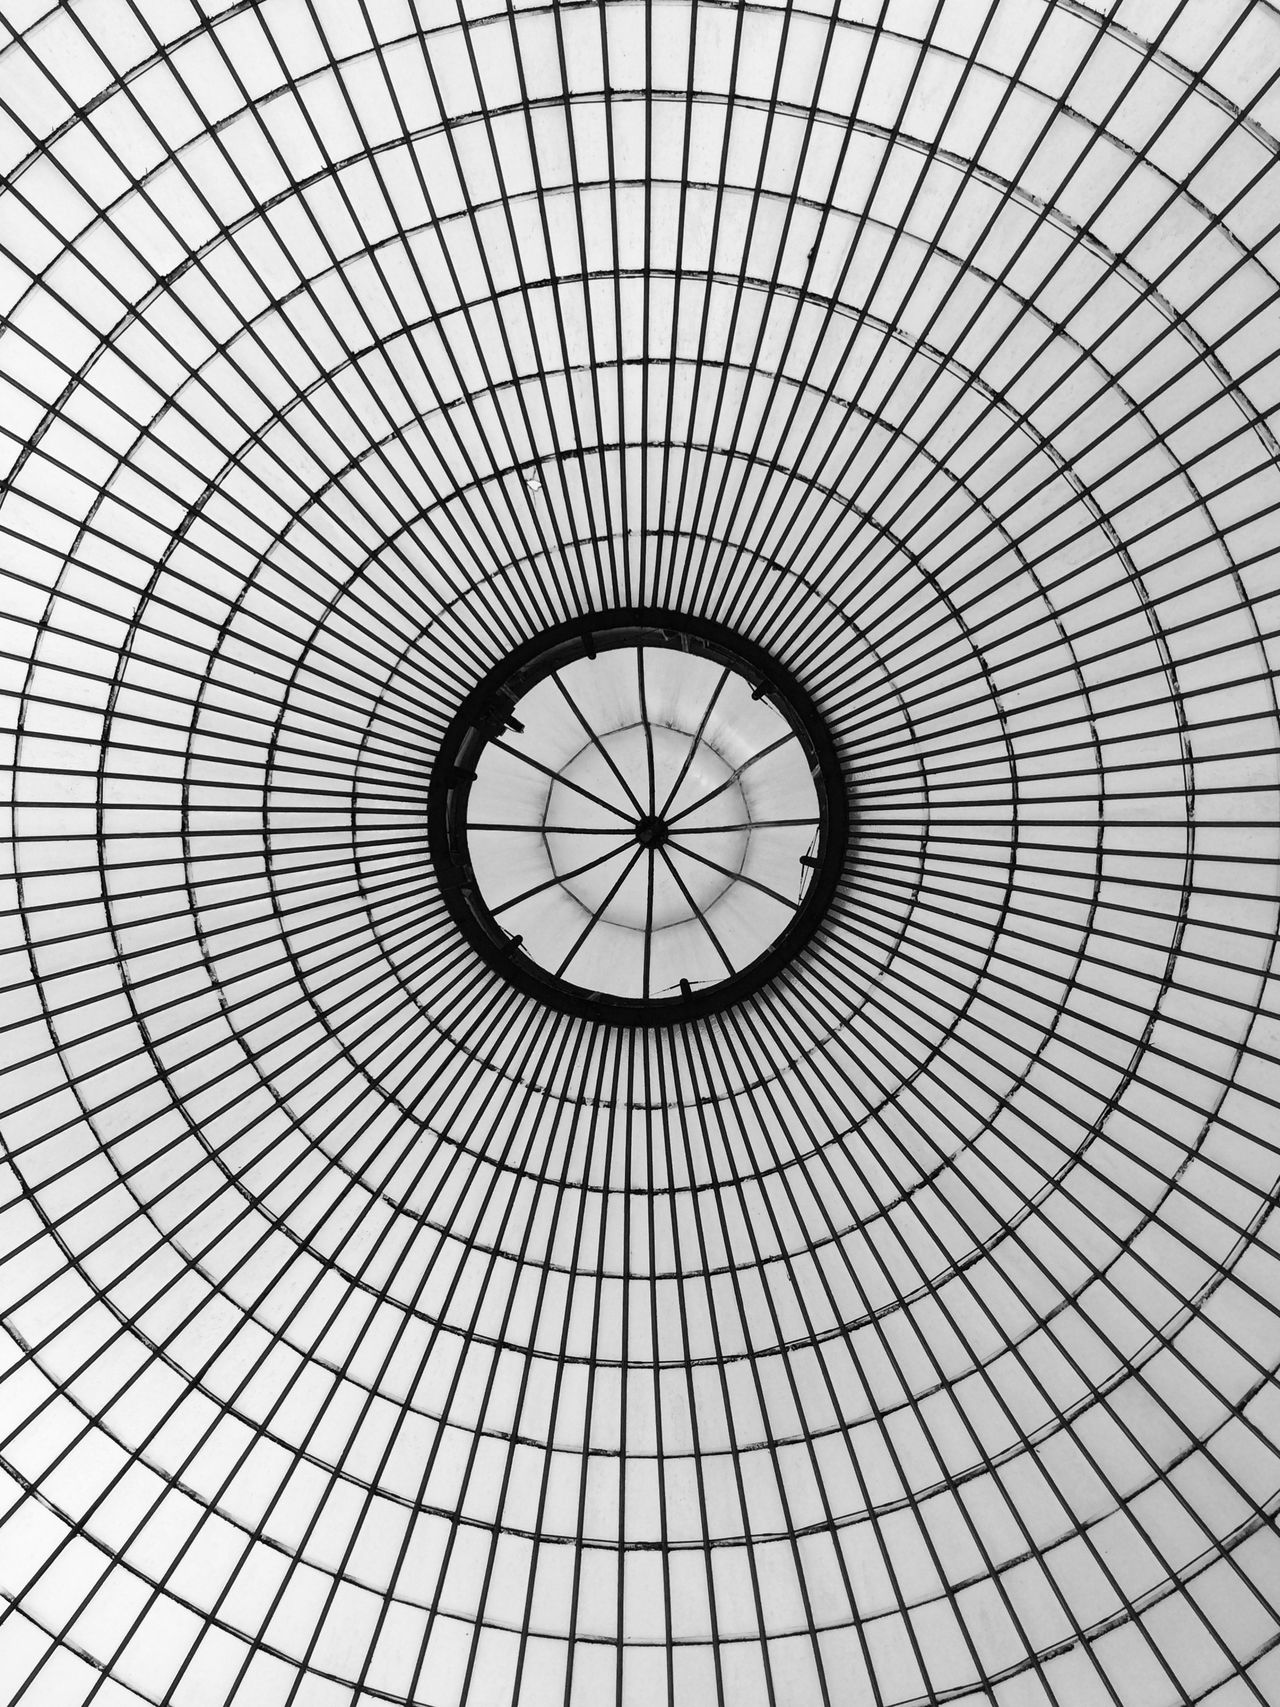 Looking up inside Kibble Palace, Glasgow Botanic Gardens, Scotland. Photo by Tom Bland. Architectural Architectural Design Architectural Feature Architecture Black And White Built Structure Ceiling Circle Circles Dome Geometric Glasgow  Glasshouse Graphic Indoors  IPhone IPhoneography Lines Looking Up Monochromatic Monochrome Pattern Shape Structure Up